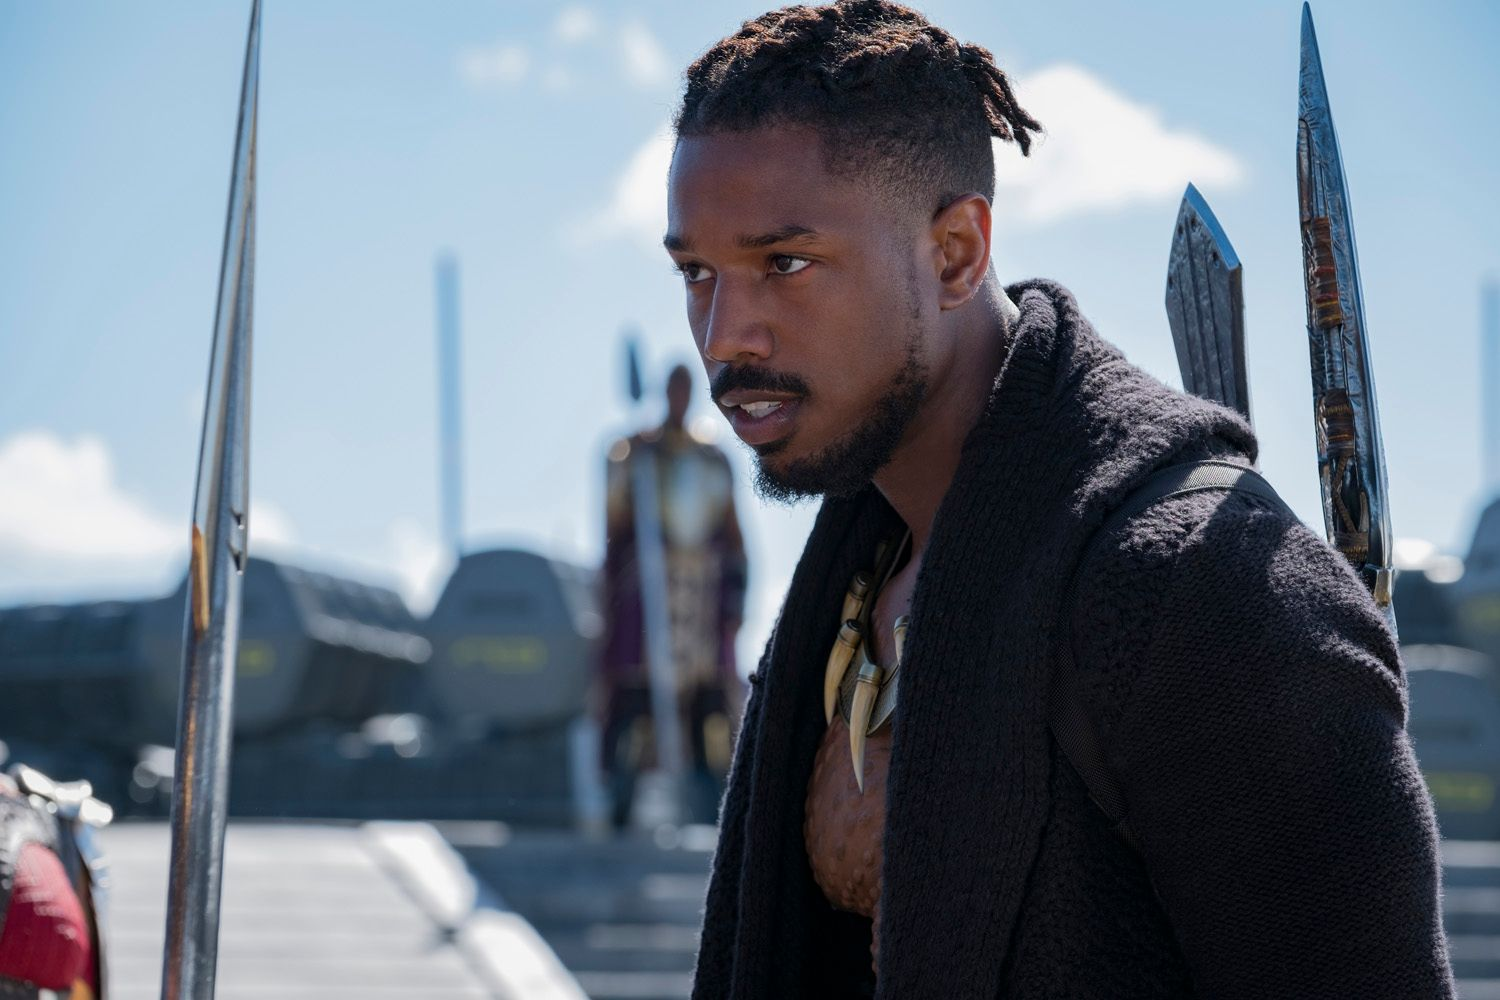 Black Panther might top Avengers as most successful superhero movie